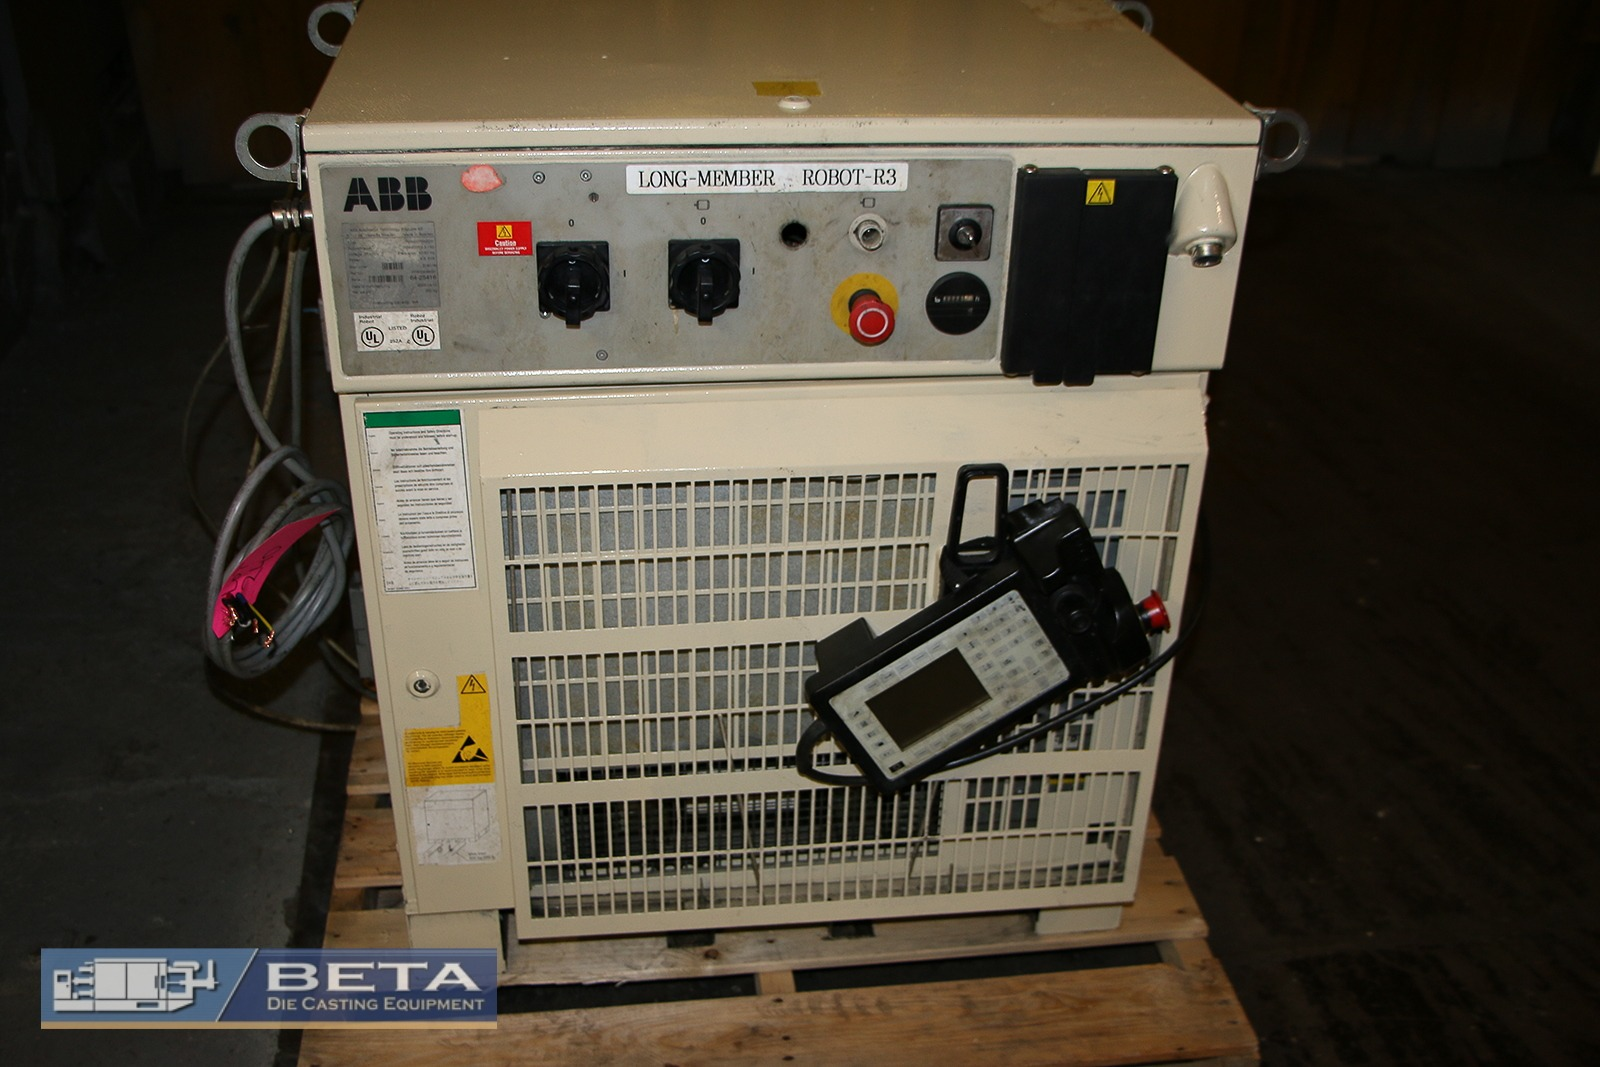 Used ABB 6400 Foundry Plus Robot #4535